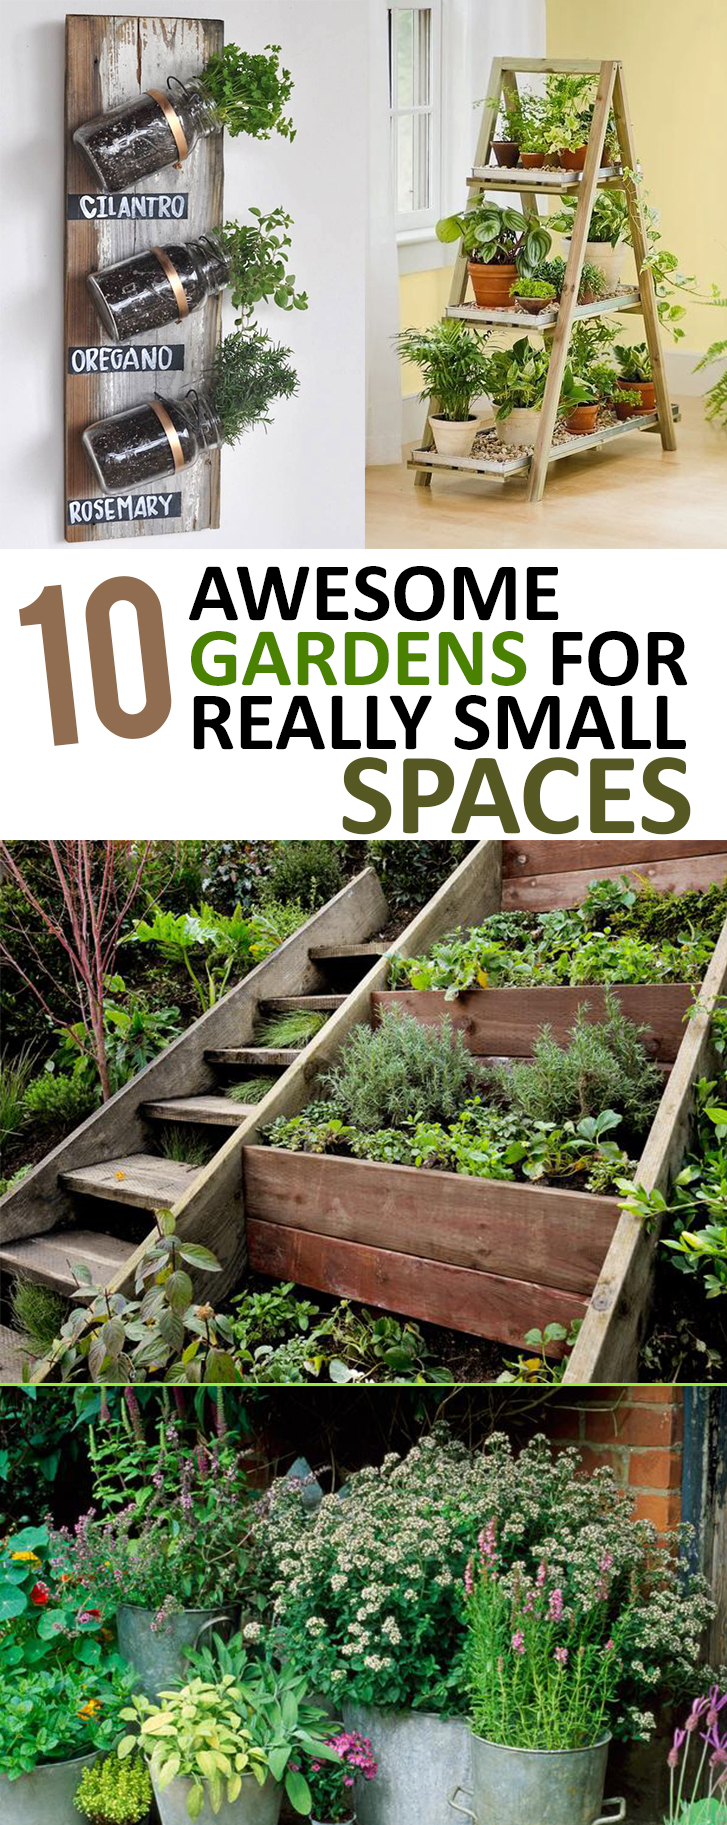 10 awesome gardens for really small spaces - Garden landscape ideas for small spaces collection ...